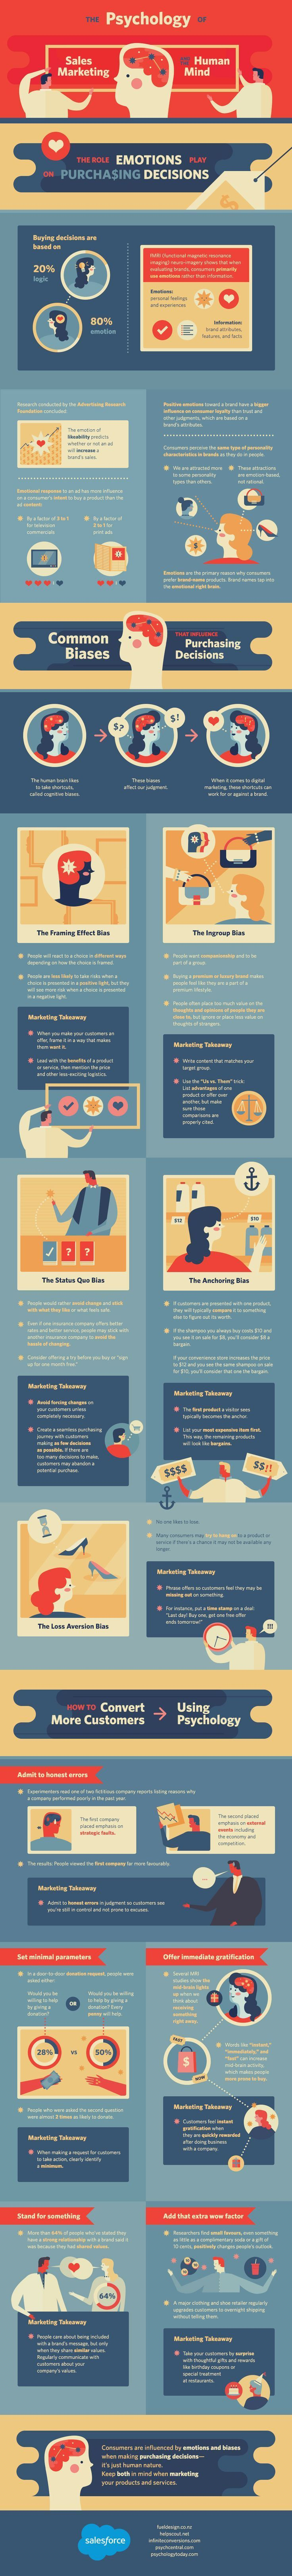 The Psychology of Sales Marketing and the Human Mind #infographic